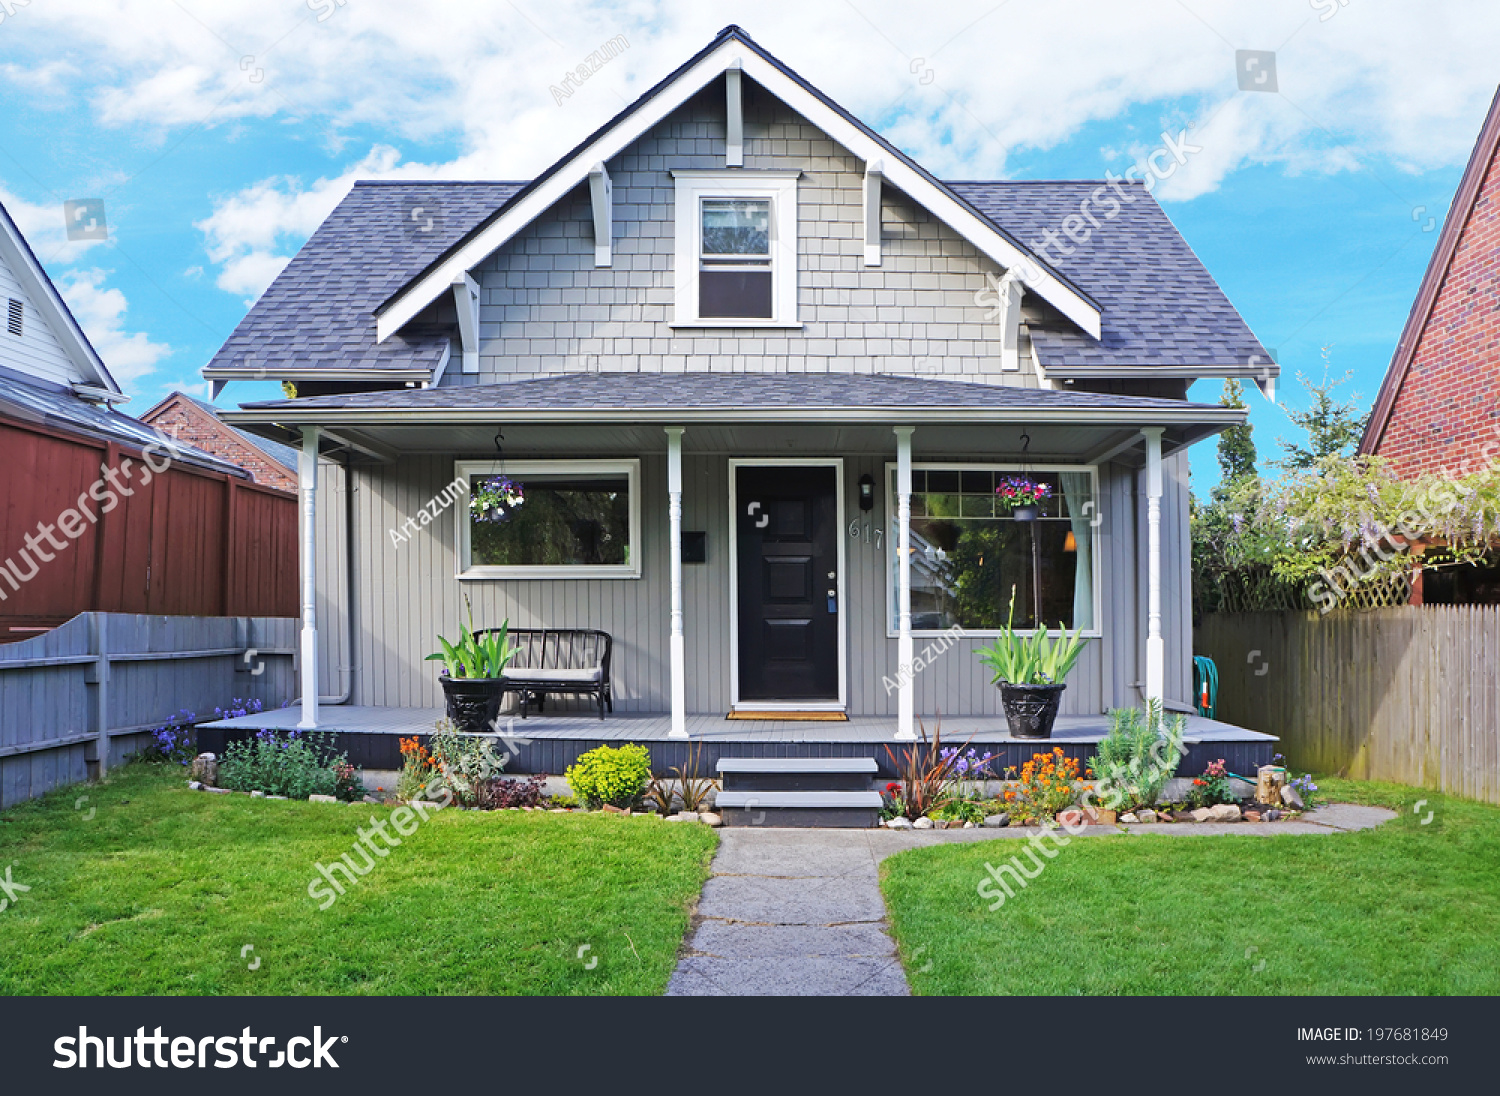 Small Old House Entrance Porch Decorated Stock Photo 197681849 Shutterstock